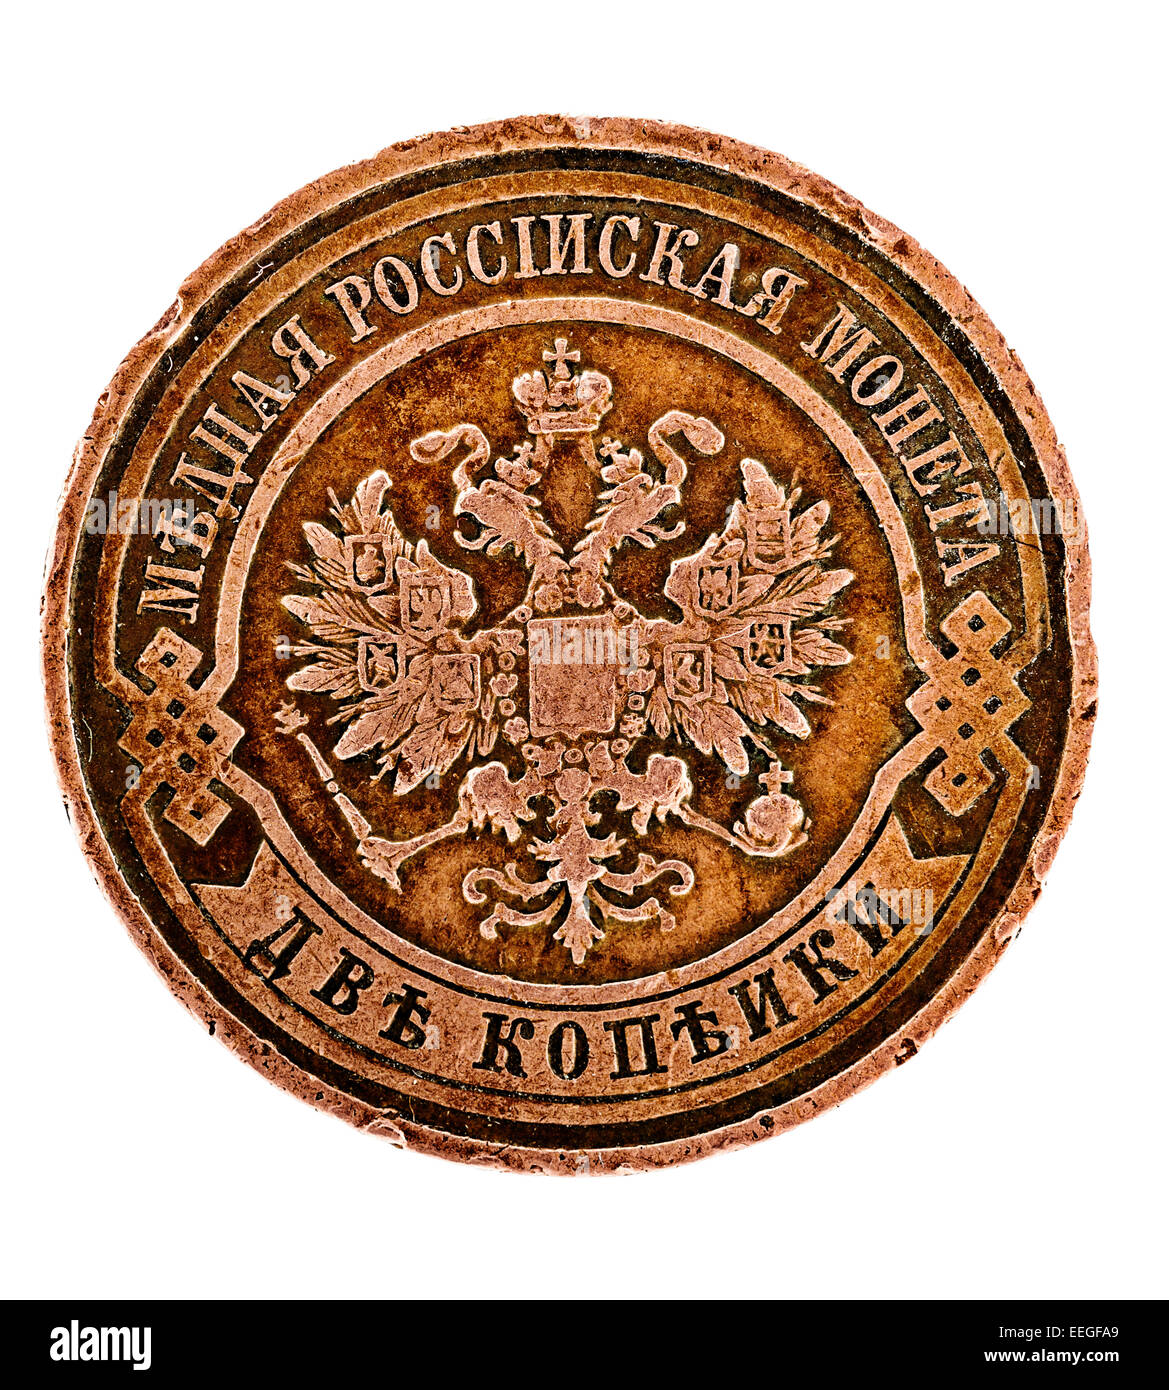 Threadbare coat of arms of the russian empire in the ancient copper threadbare coat of arms of the russian empire in the ancient copper coin buycottarizona Image collections